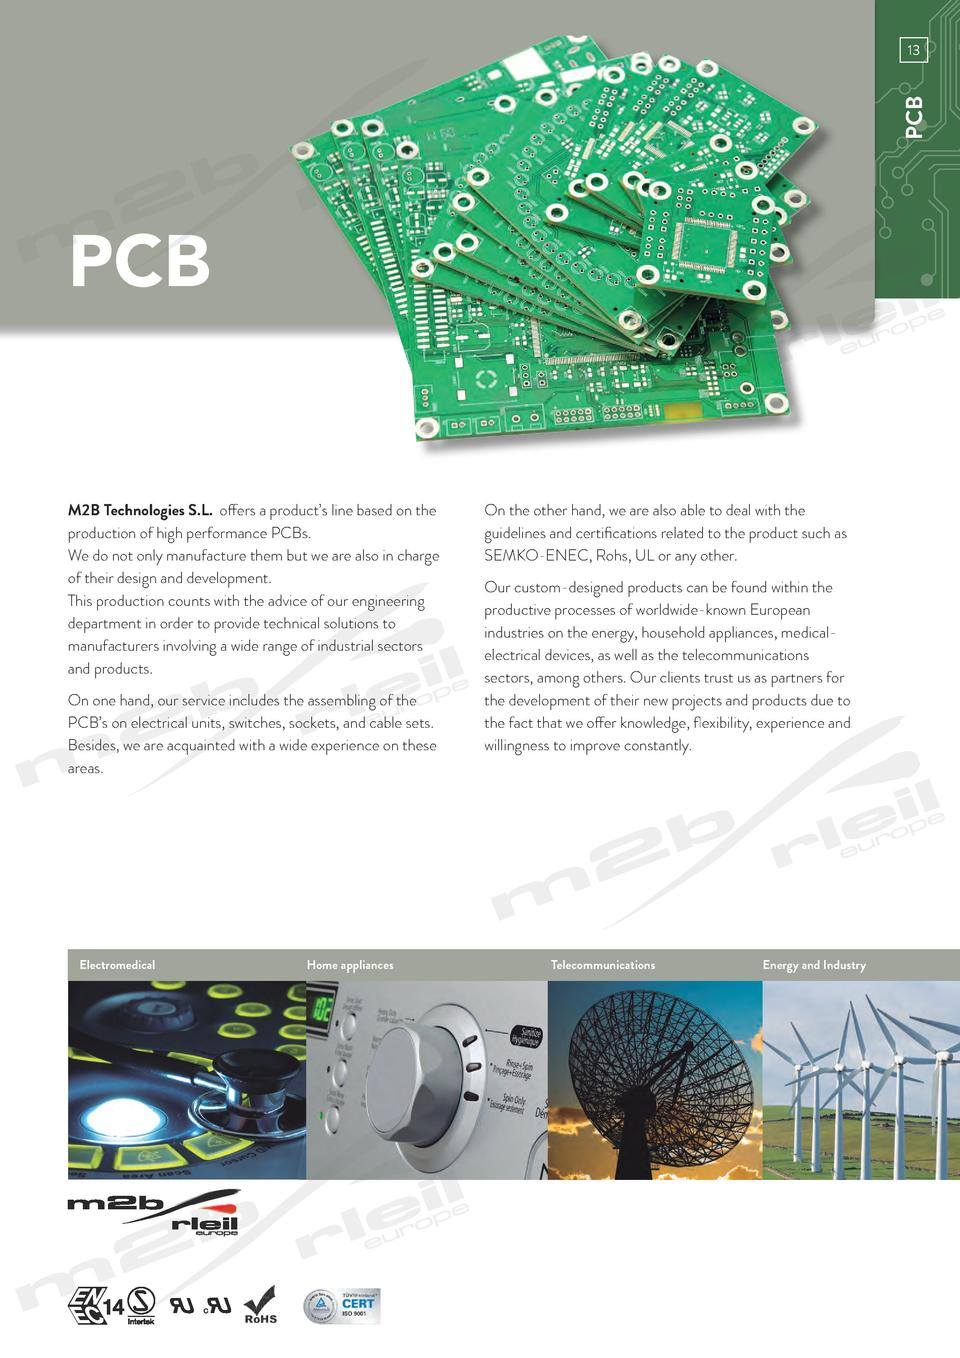 www.m2bswitches.com  PCB  13  PCB M2B Technologies S.L. offers a product   s line based on the production of high performa...